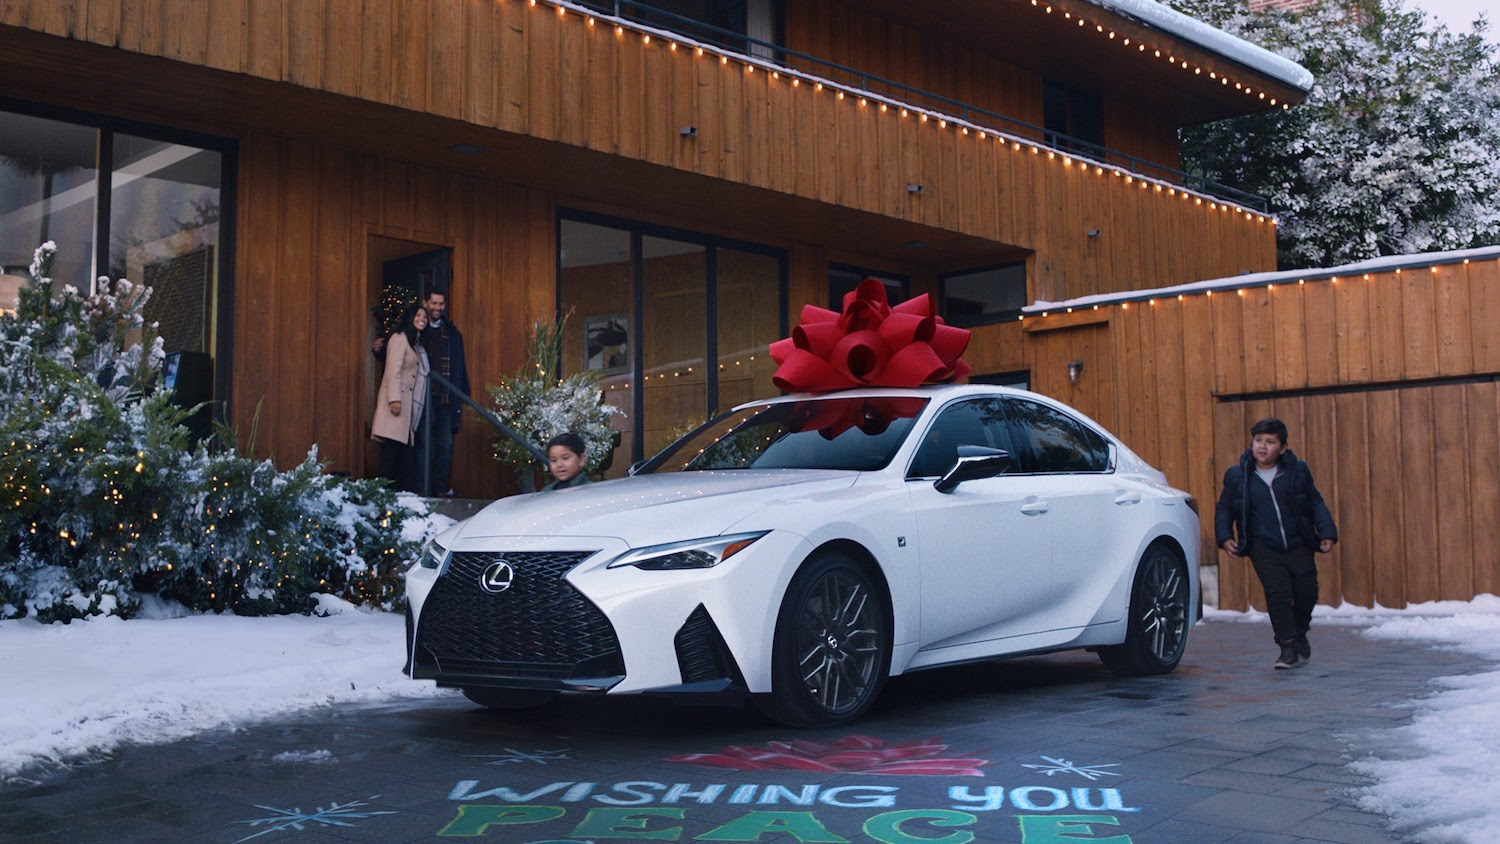 New Lexus with Bow